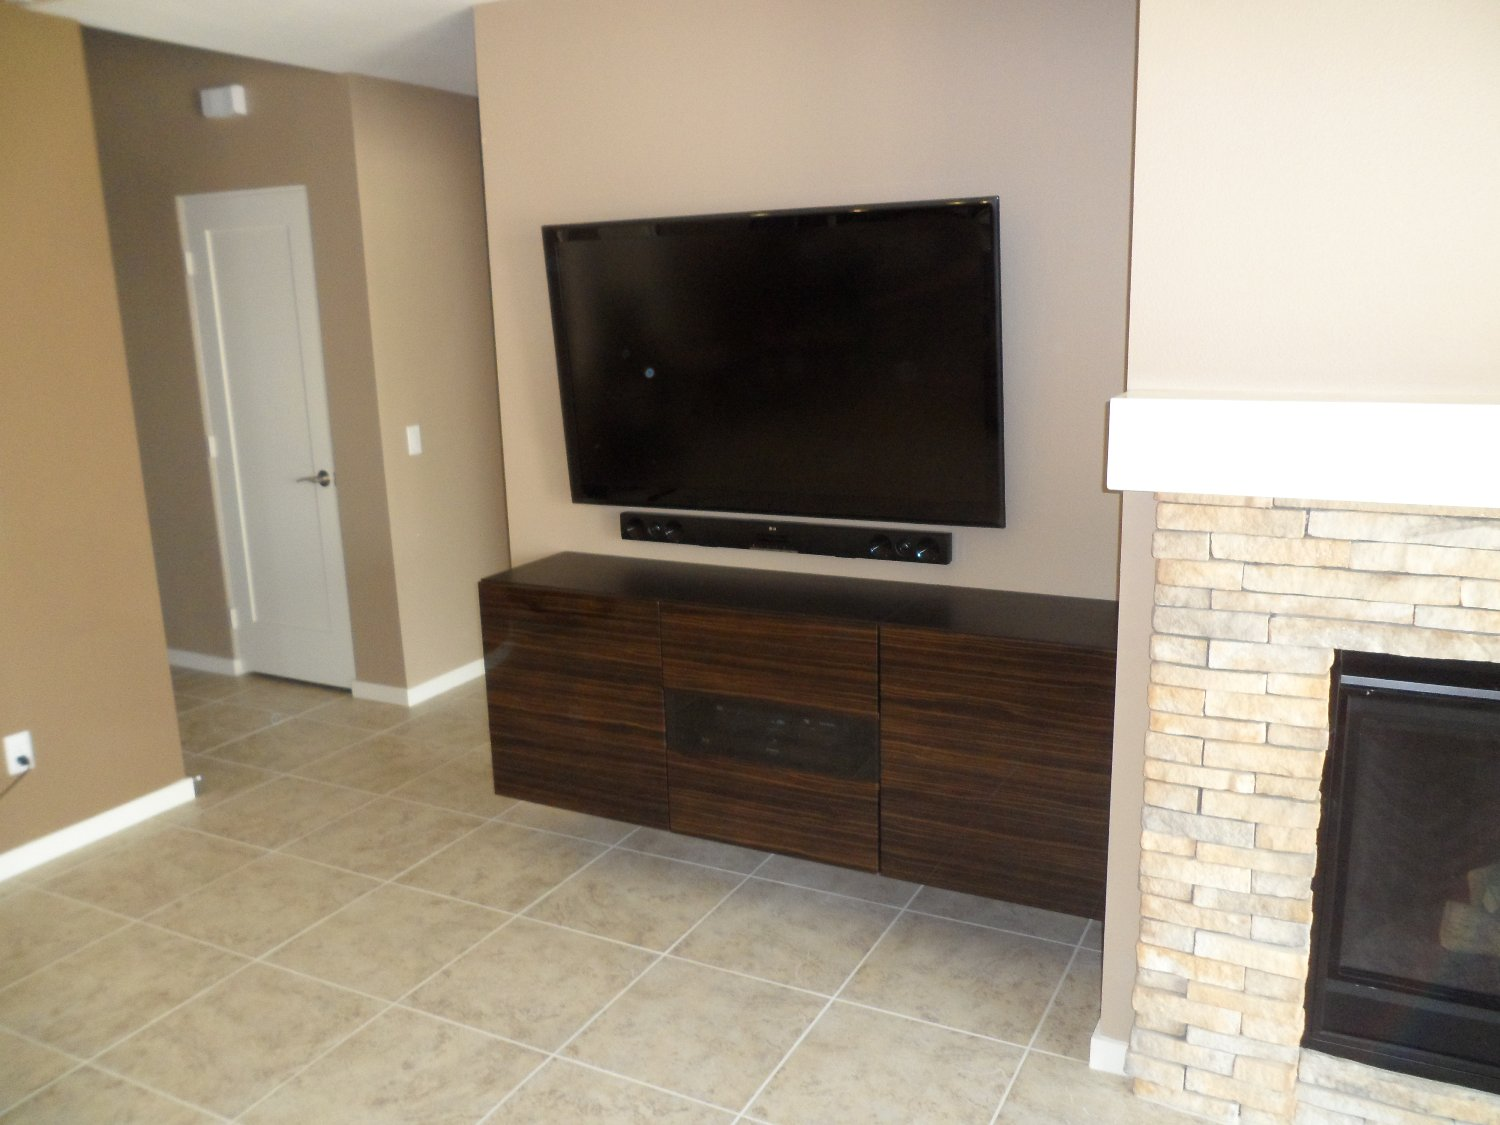 Floating TV Cabinets - Compare Prices, Reviews and Buy at Nextag